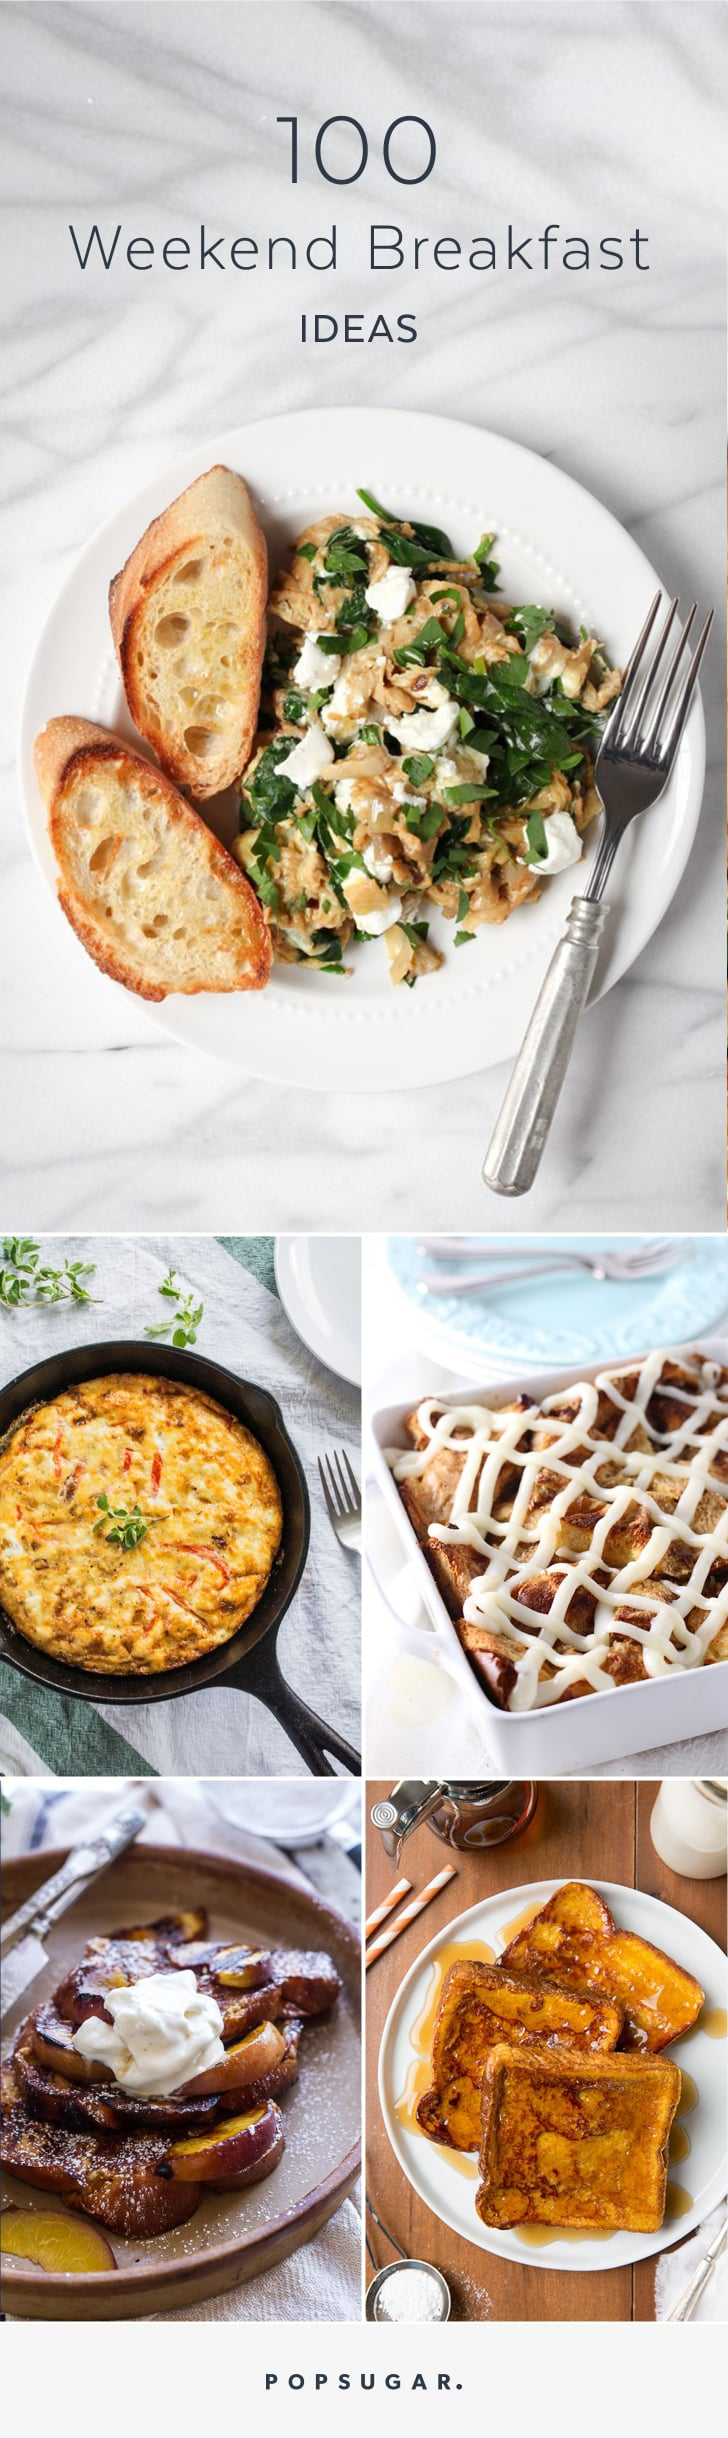 100 Breakfasts to Make on Weekends When You Have the Time